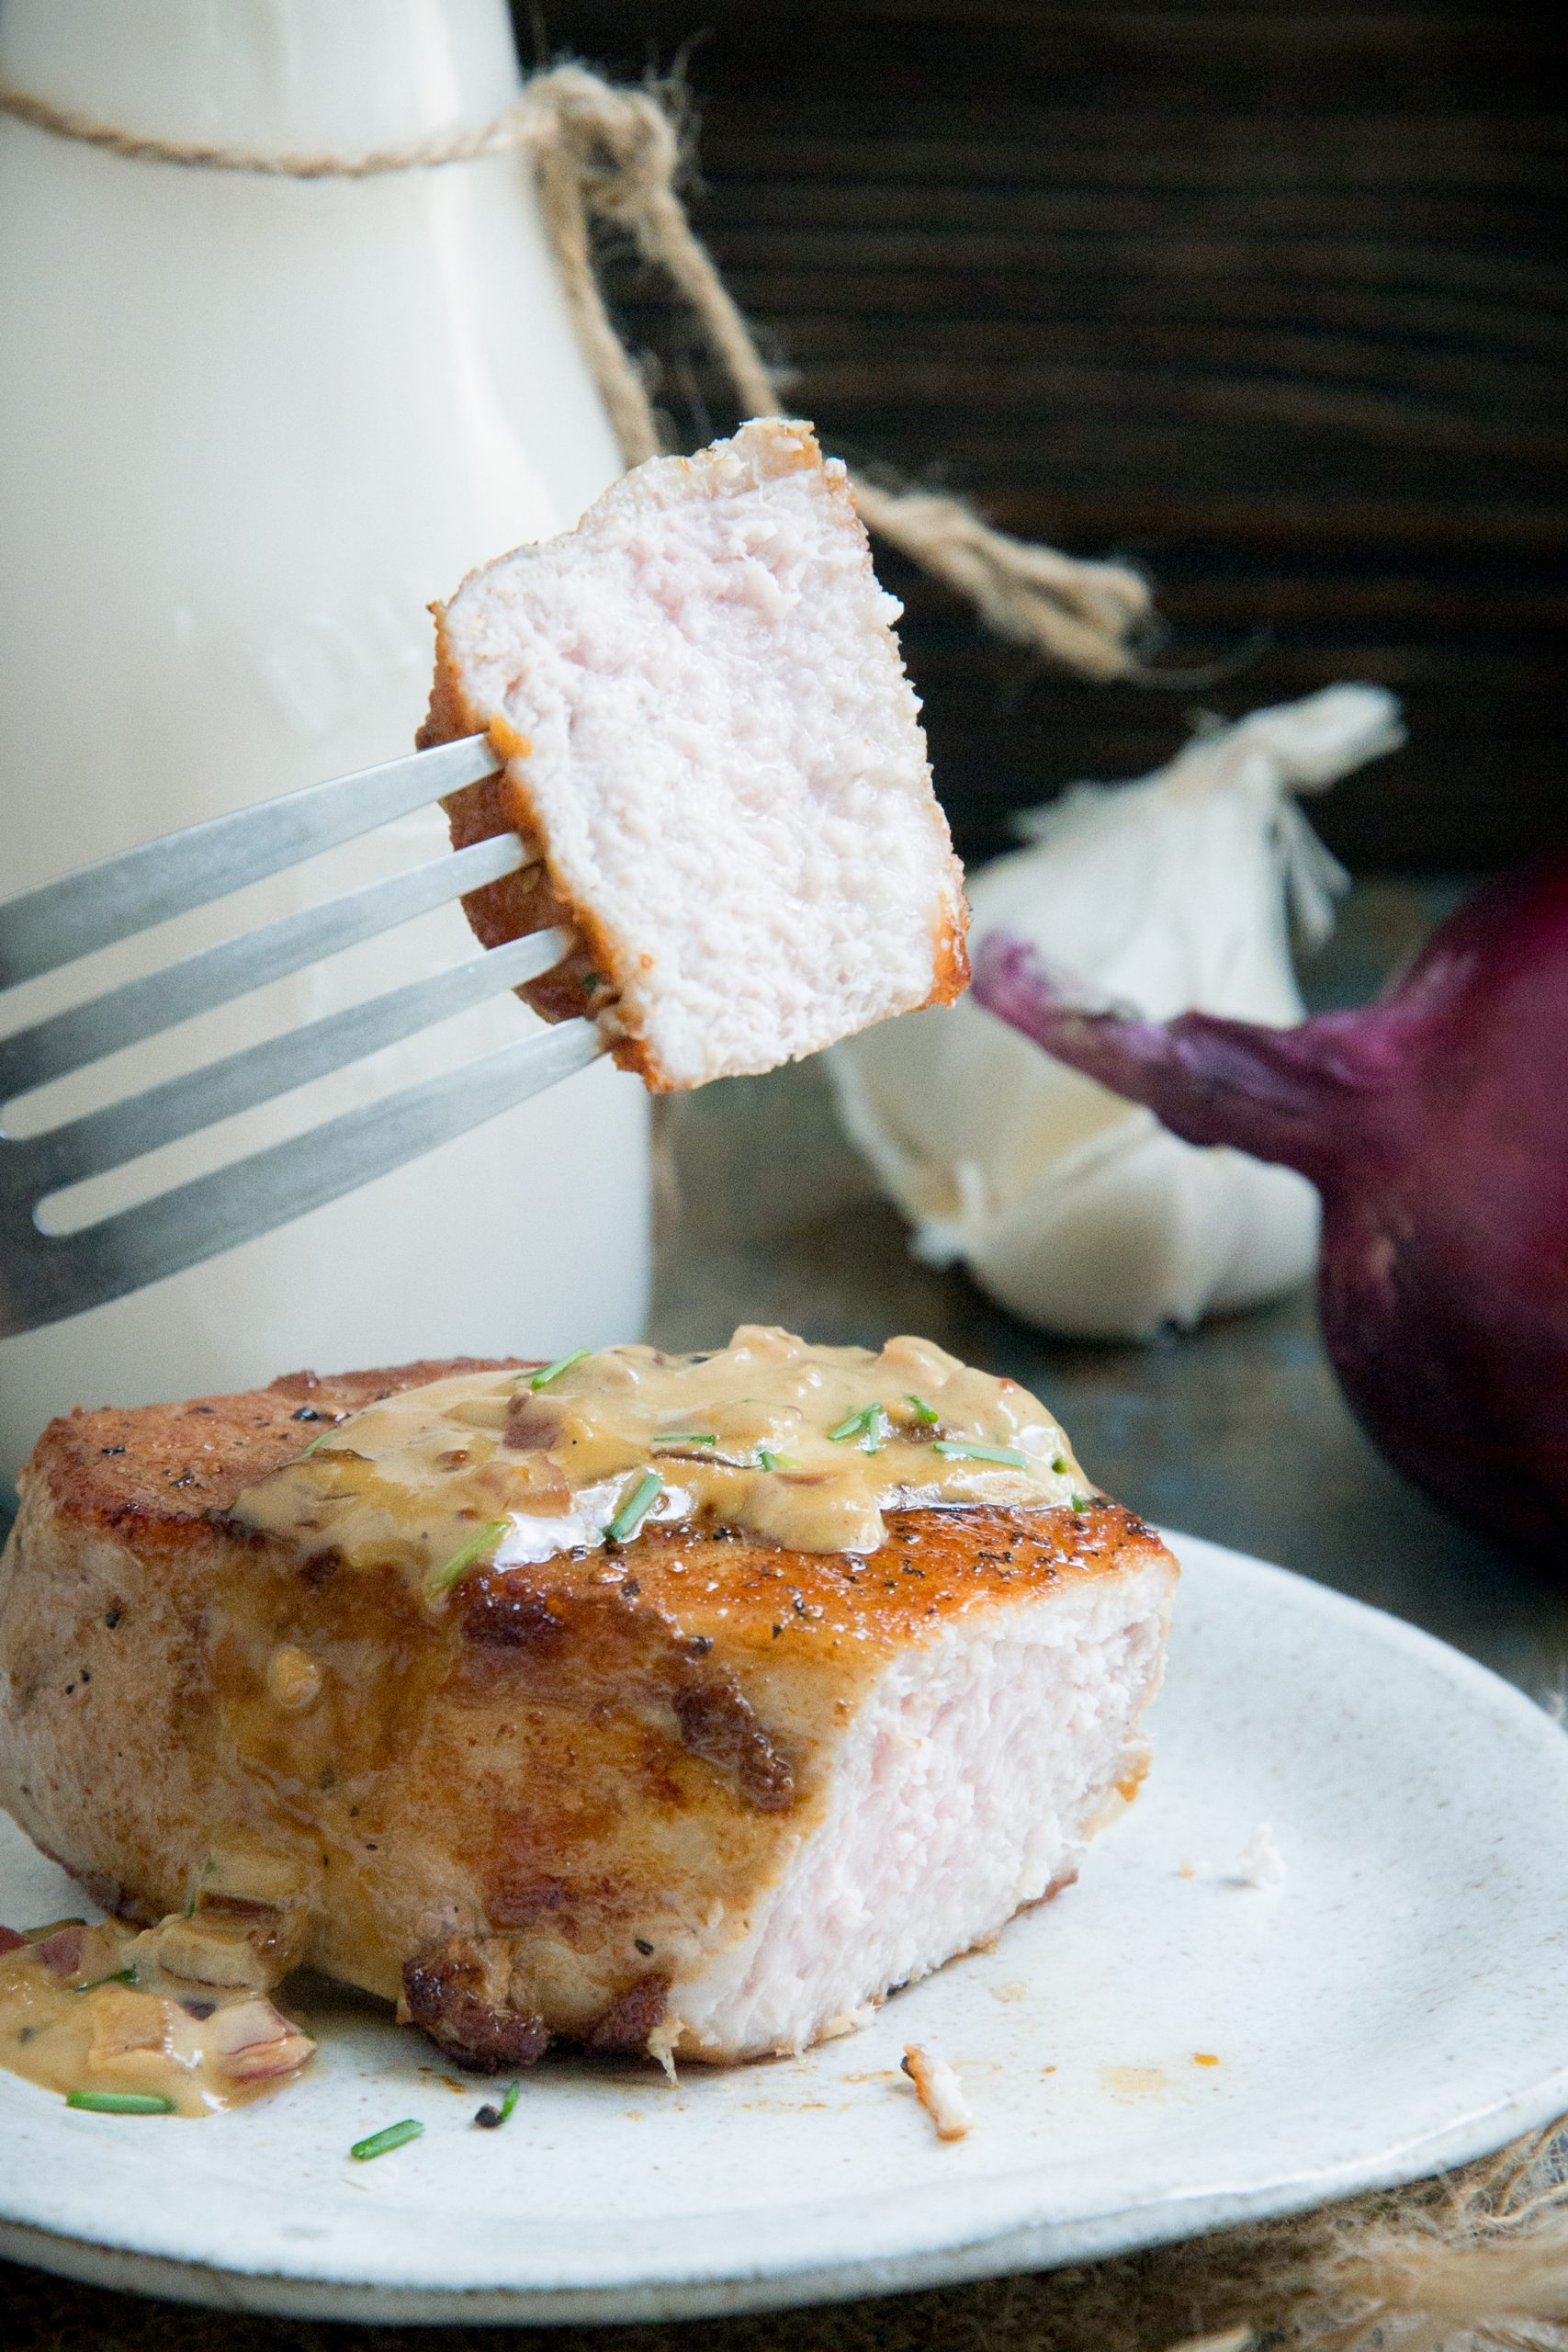 Taking a bite of the pork chop with garlic chive cream sauce.